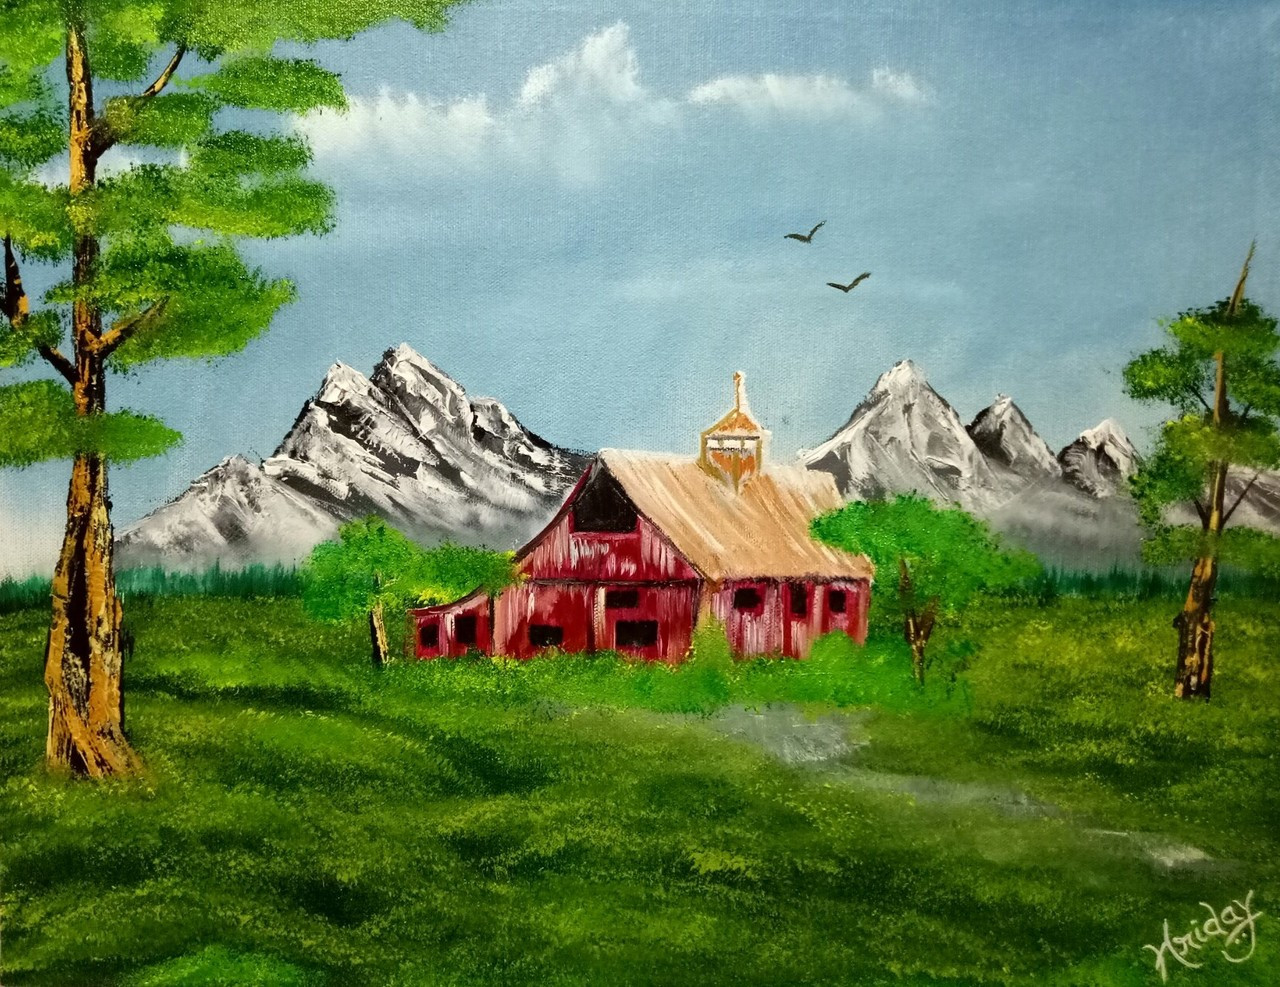 Buy Forest Red Barn Handmade Painting by HRIDAY DAS. Code ...